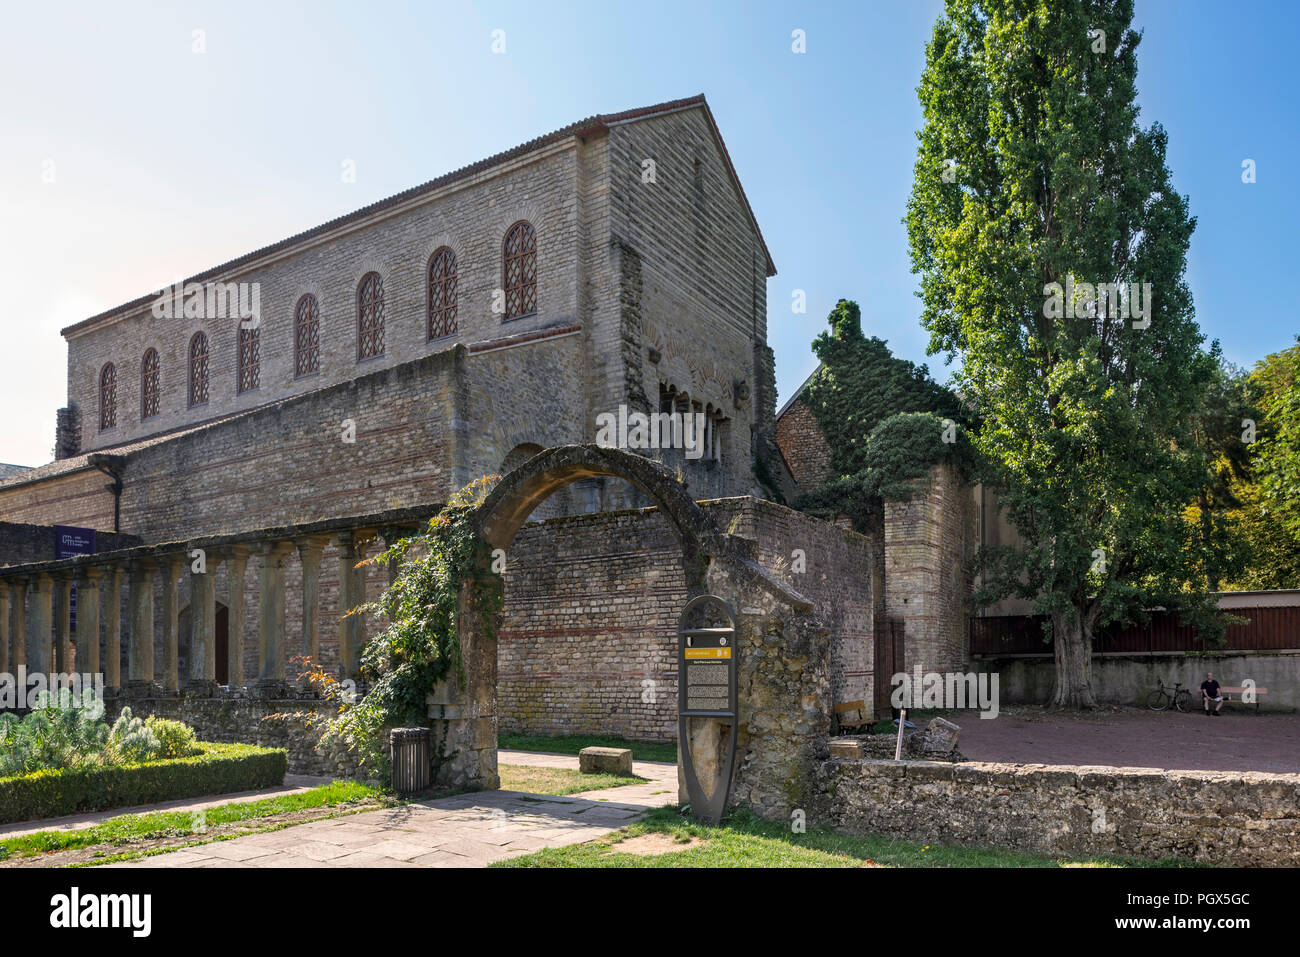 4th century basilica and former monastic church of Saint-Pierre-aux-Nonnains in the city Metz, Moselle, Lorraine, France - Stock Image